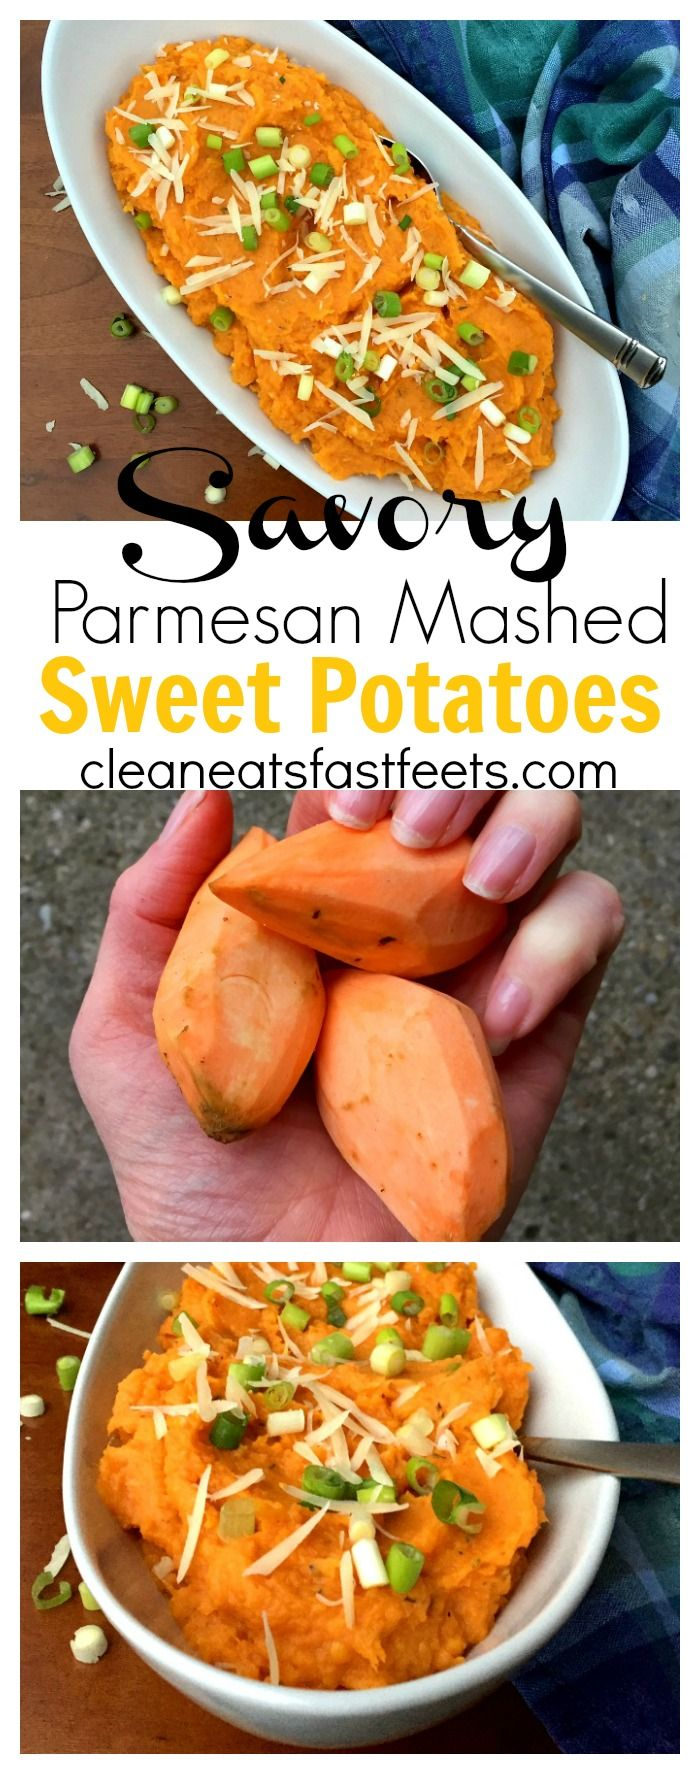 Savory Parmesan Mashed Sweet Potatoes. You want these on your table for…